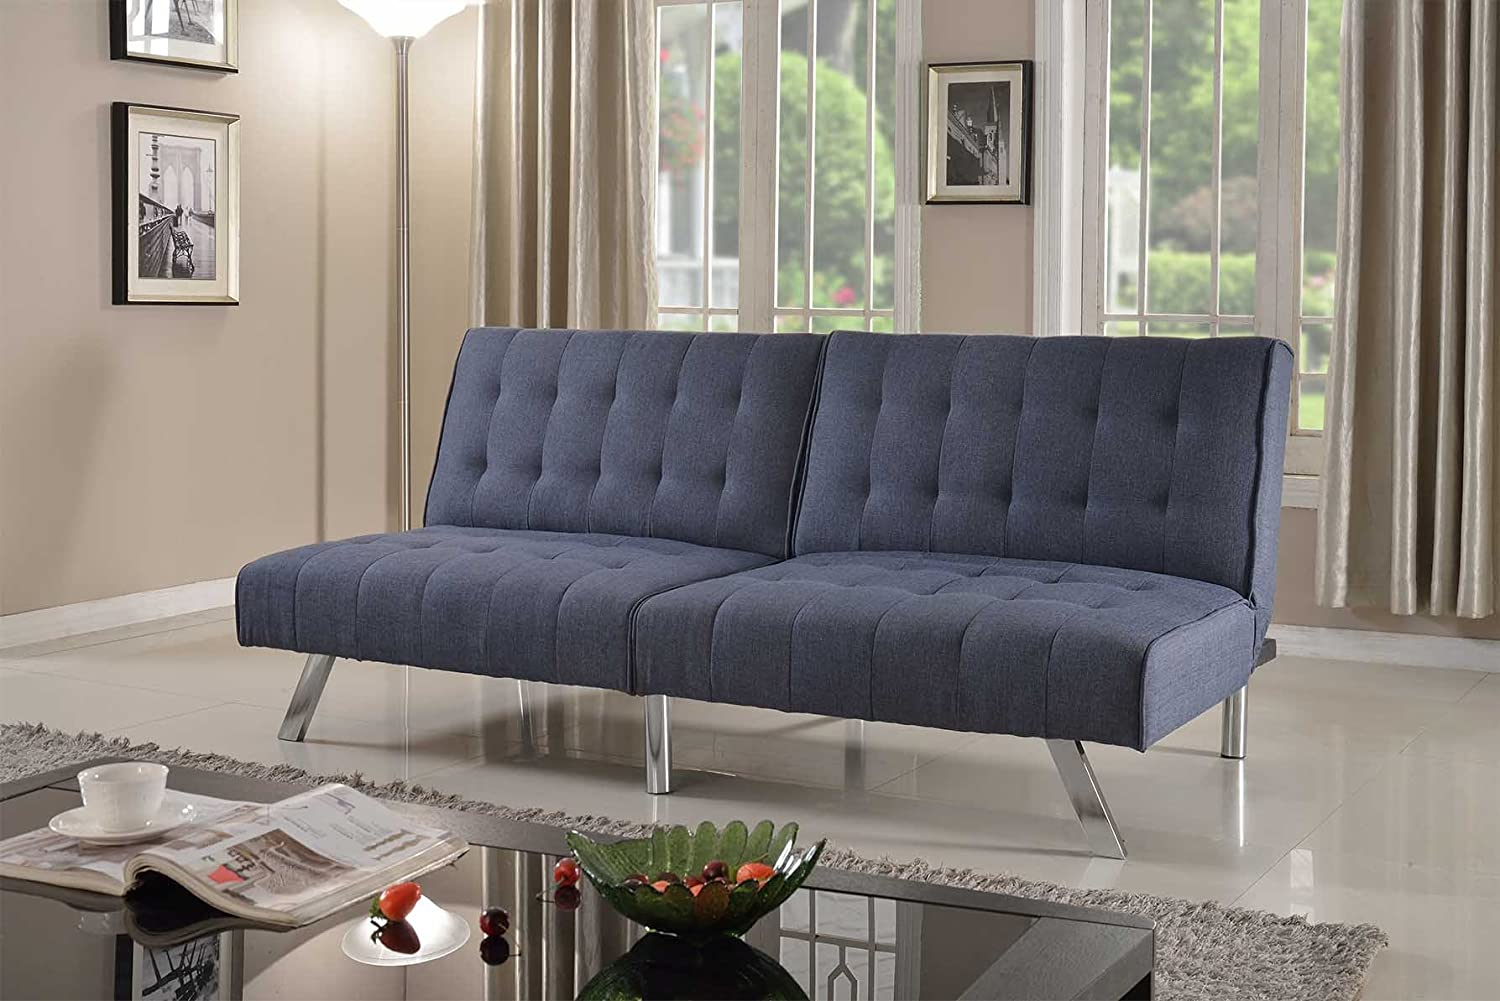 Best Adjustable Beds 2020.Top 10 Best Sleeper Sofa Beds 2019 2020 On Flipboard By